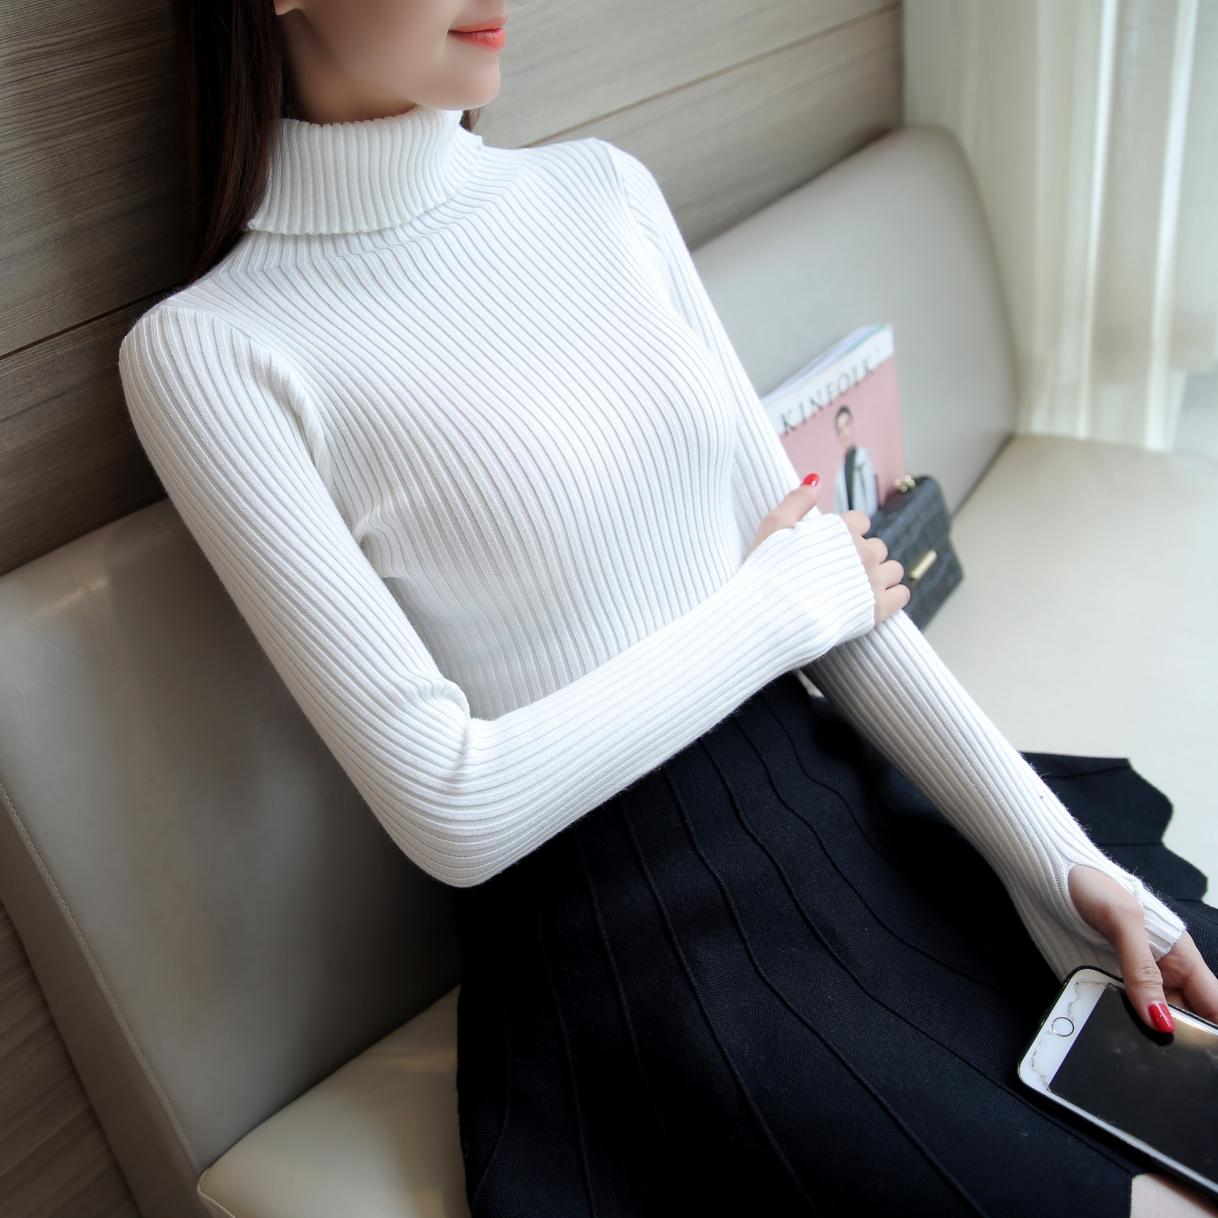 turtle neck  Women Sweater Pullover Basic Rib Knitted Cotton Tops Essential Jumper Long Sleeve Sweaters Autumn Winter 2017